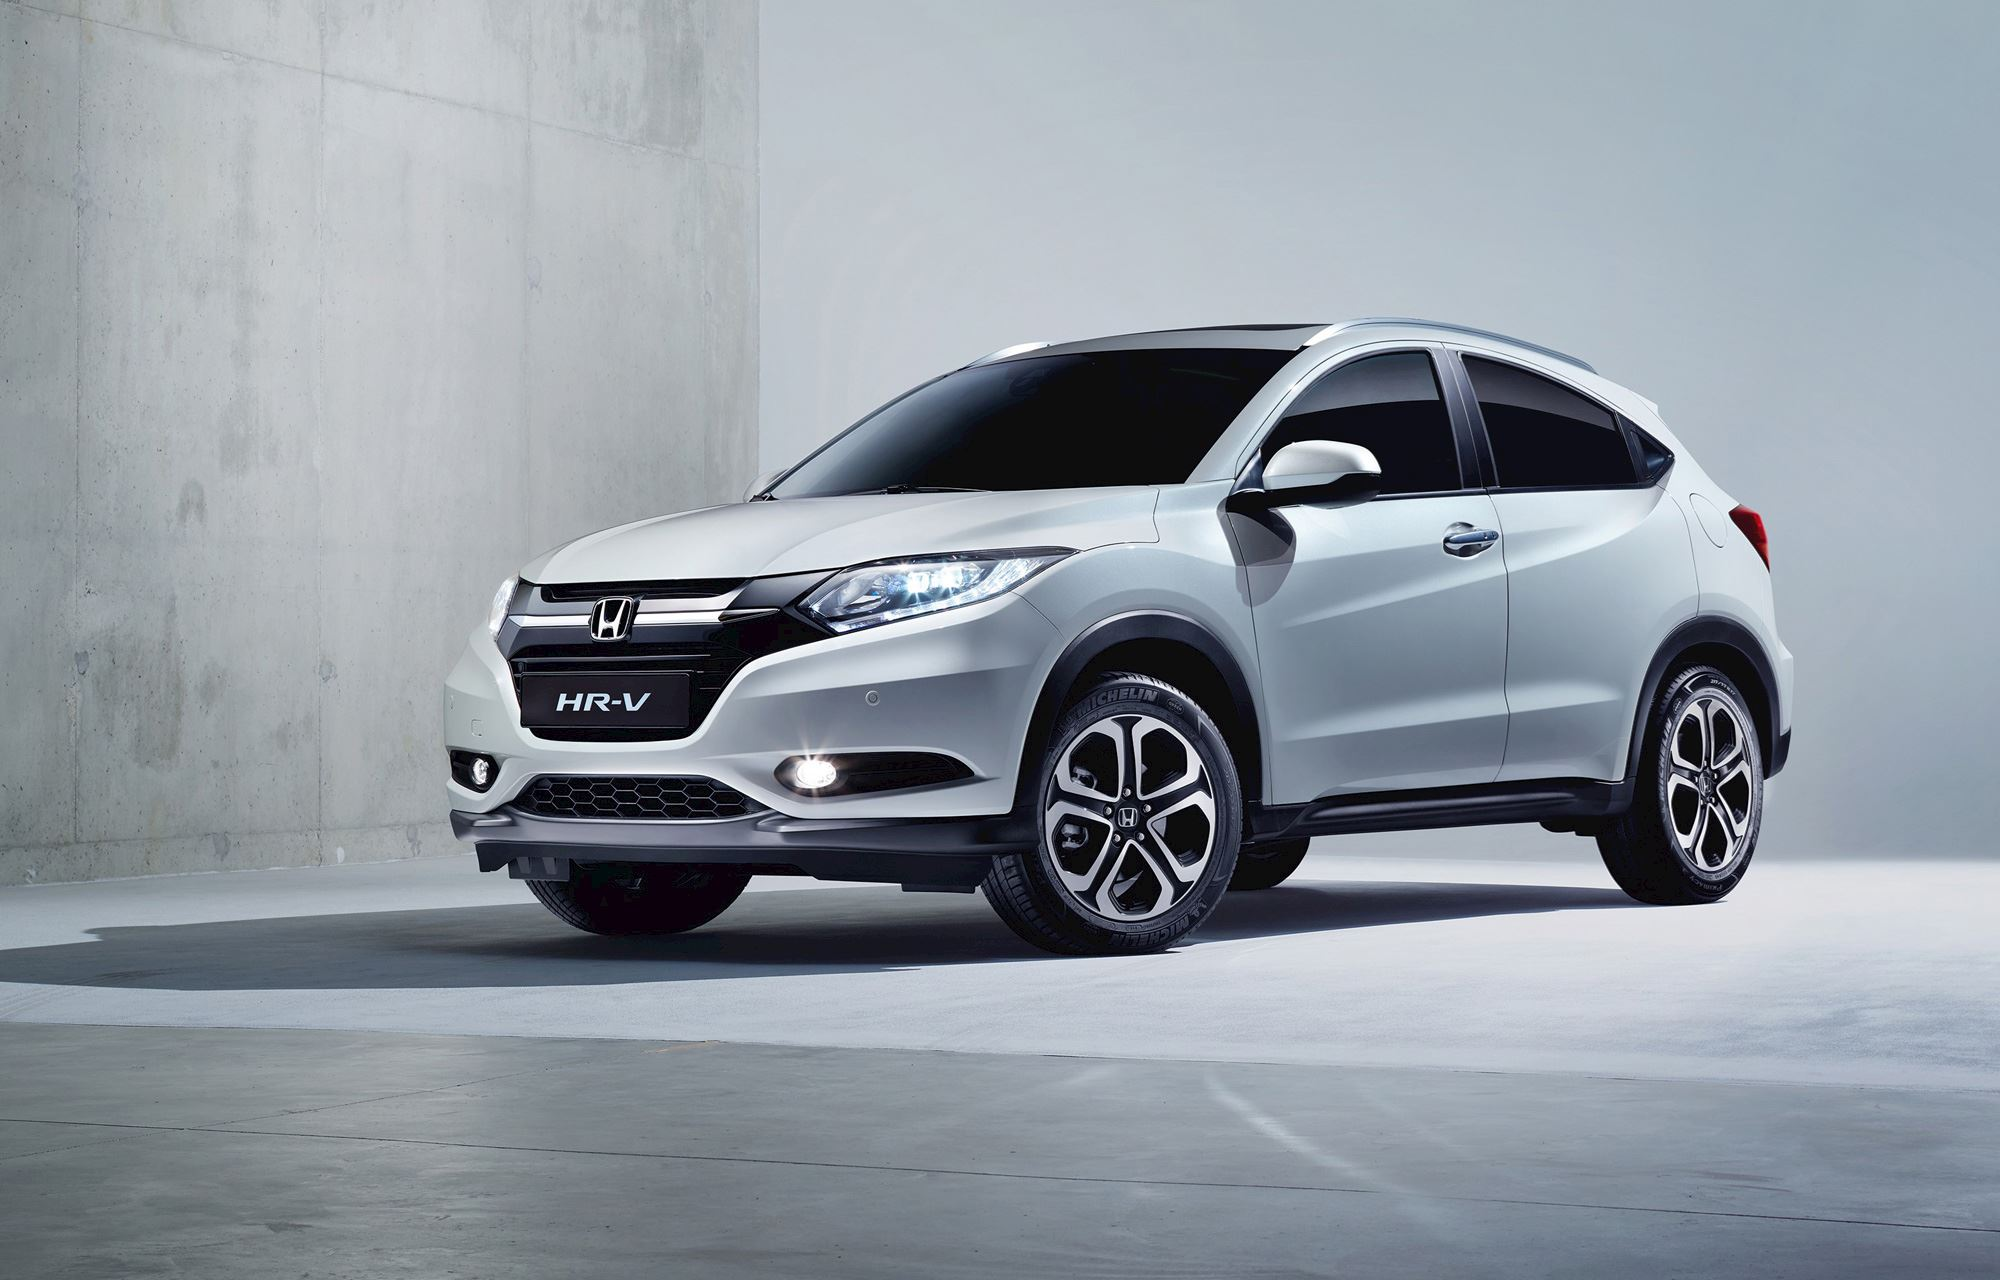 Honda HR-V and Jazz Earn 5 Star Euro NCAP Safety Ratings